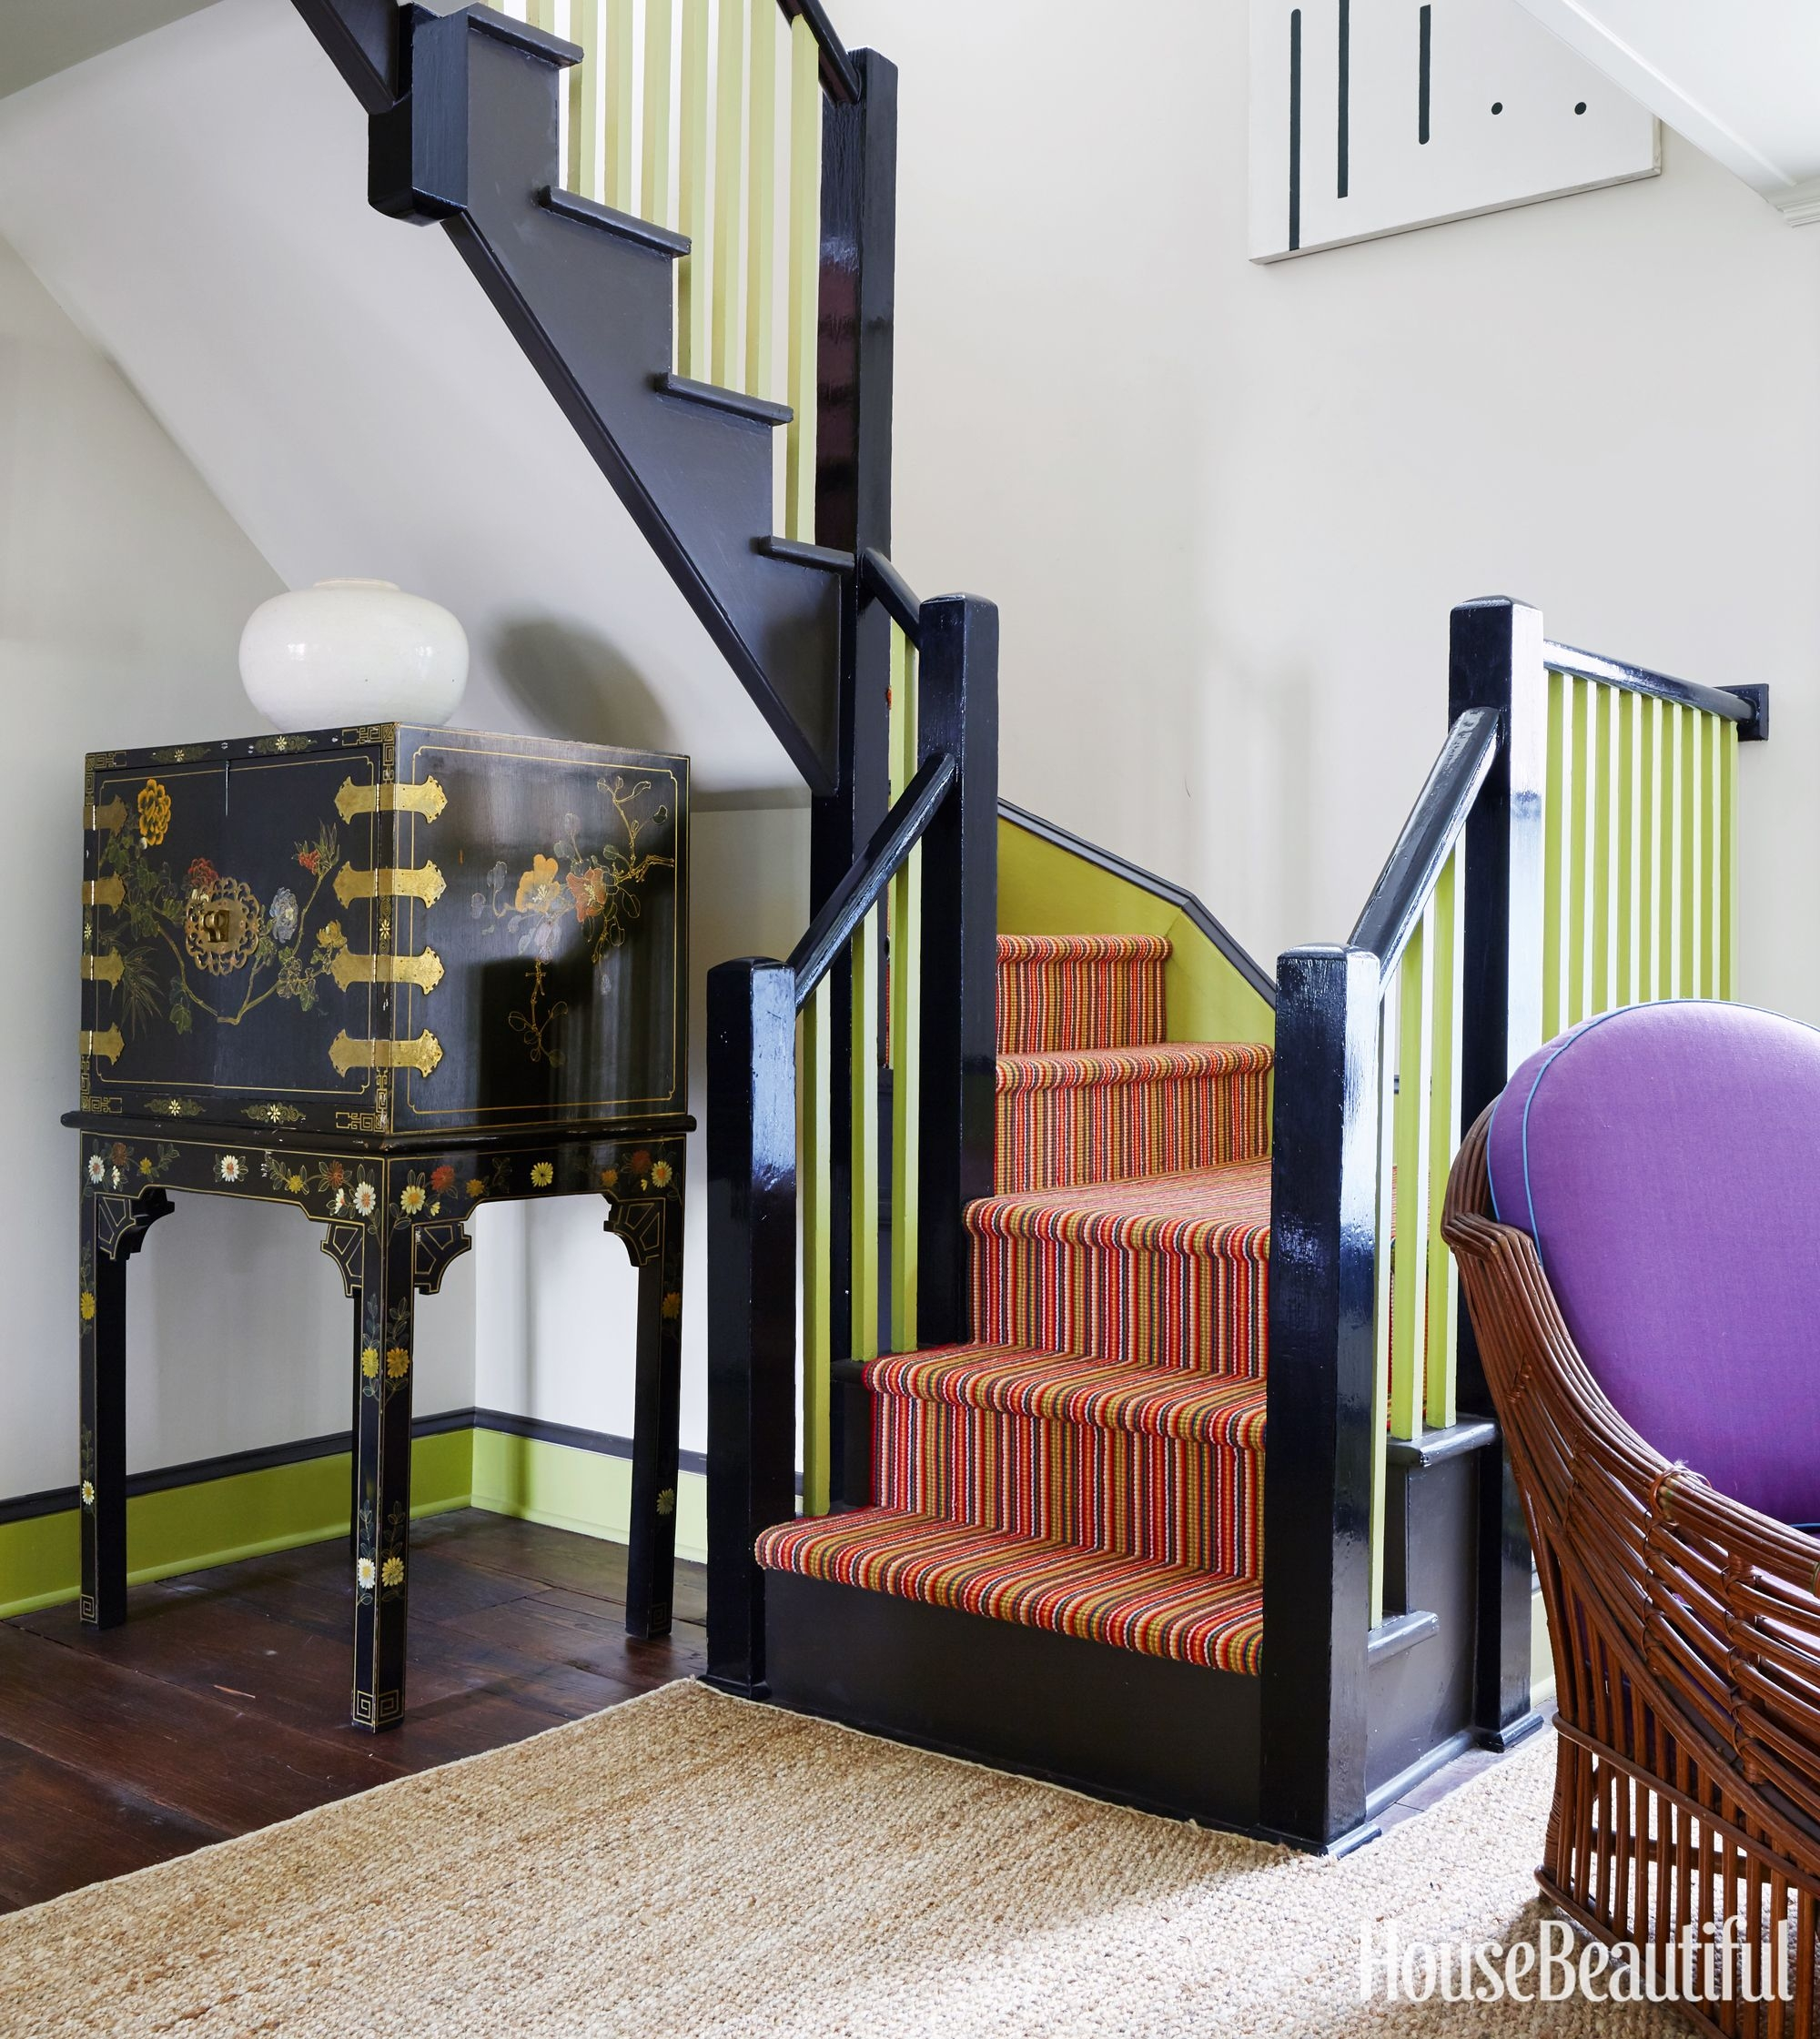 25 Unique Stair Designs Beautiful Stair Ideas For Your House | Interior Staircase Design In Main Hall For Duplex House | Residential Stair | Middle Class Village Indian House | View | 16X16 Hall | Beautiful